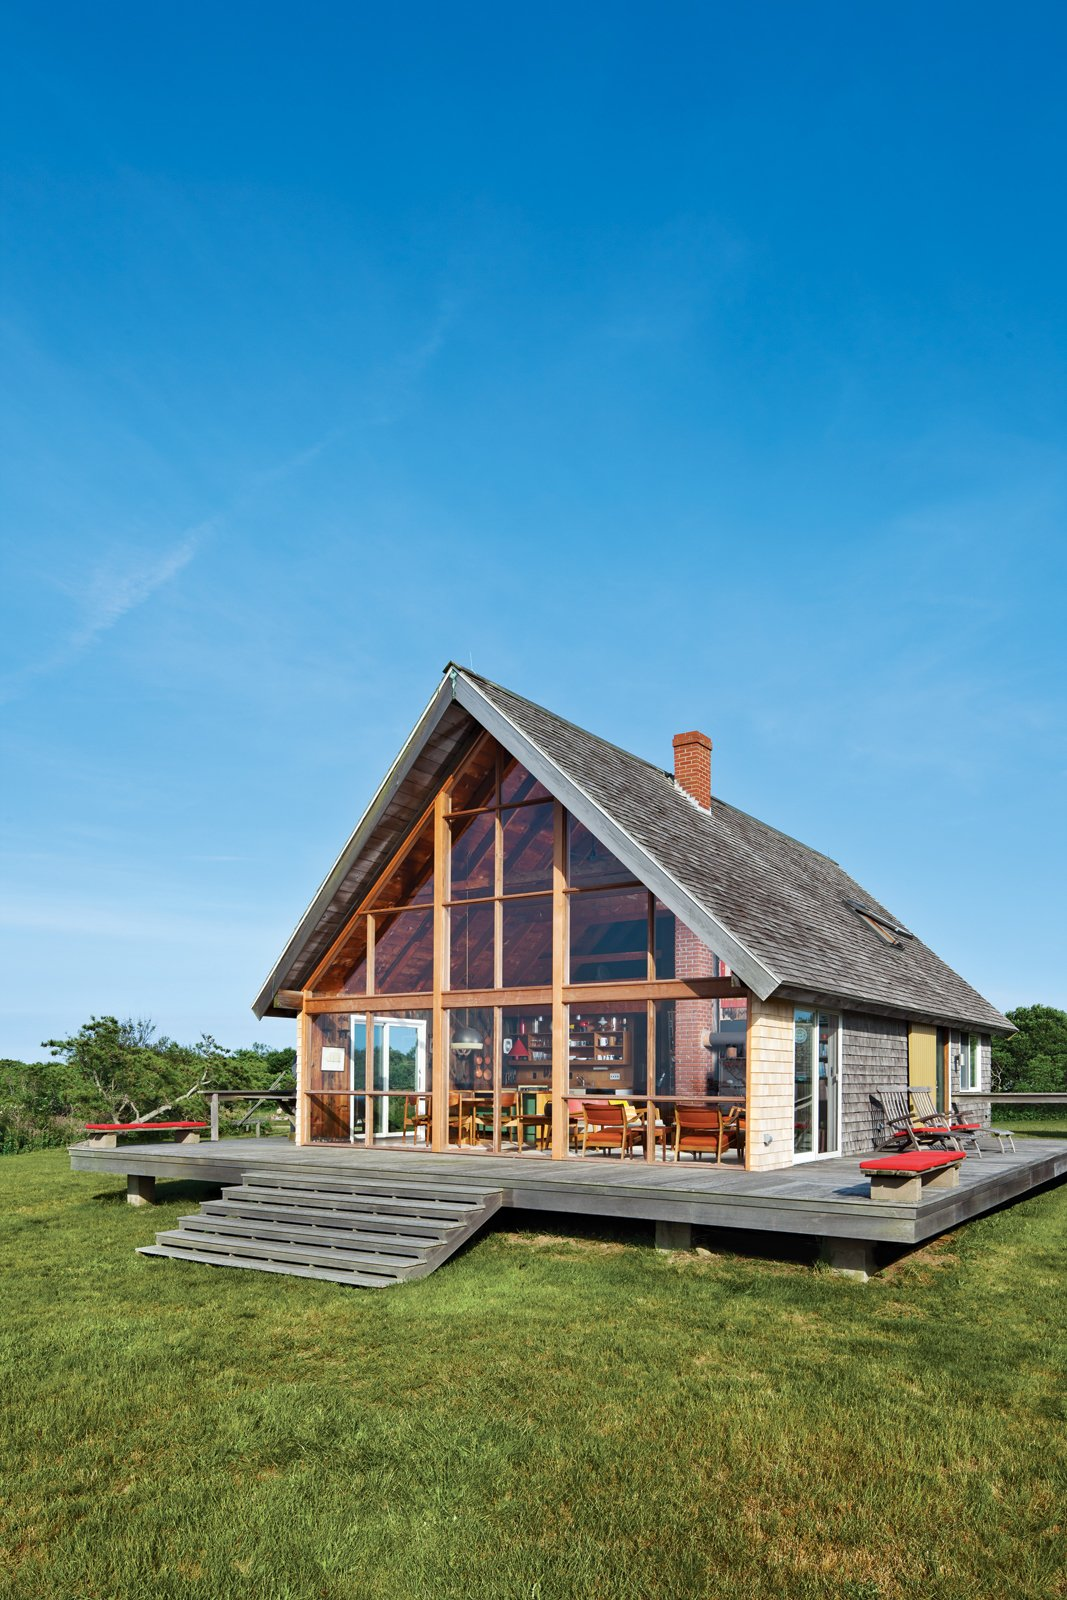 jens risom block island modern prefab vacation home a frame exterior wood deck